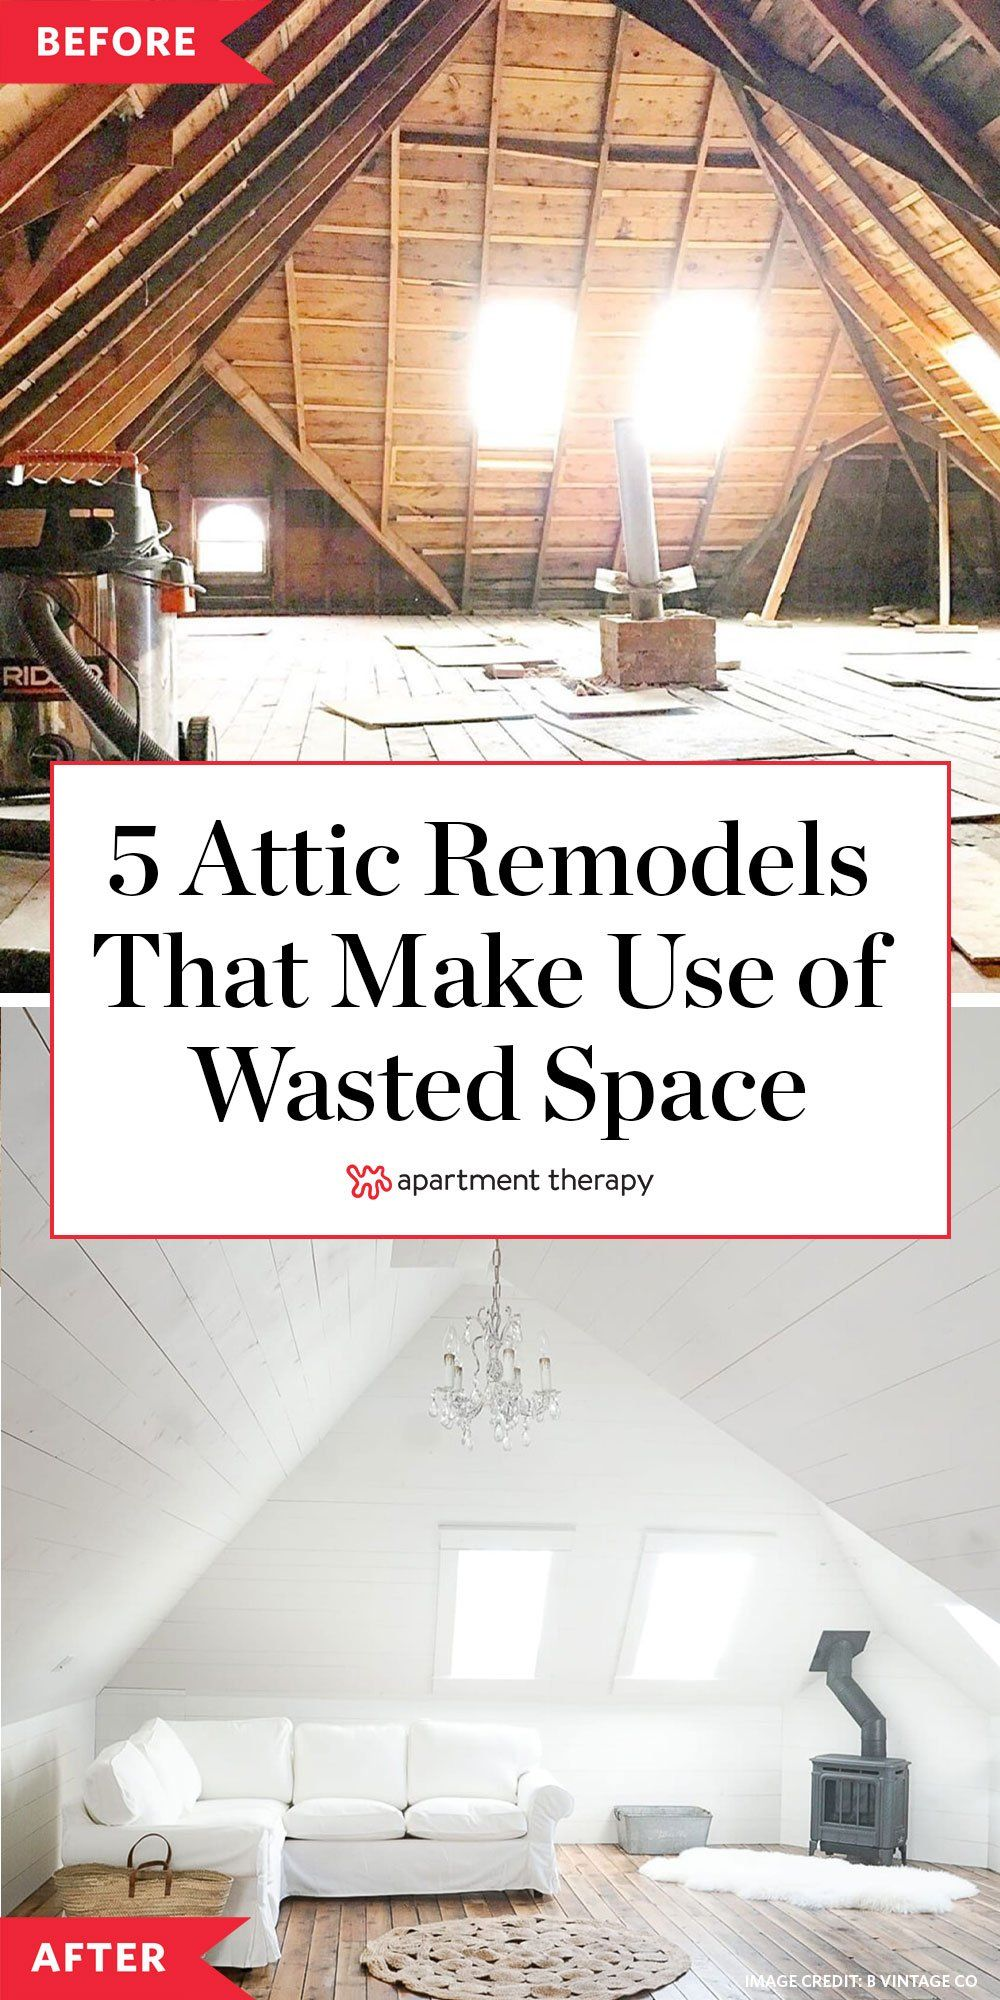 5 Dreamy Attic Remodels That Take Cozy Style All The Way To The Top In 2020 Attic Remodel Remodel Attic Rooms